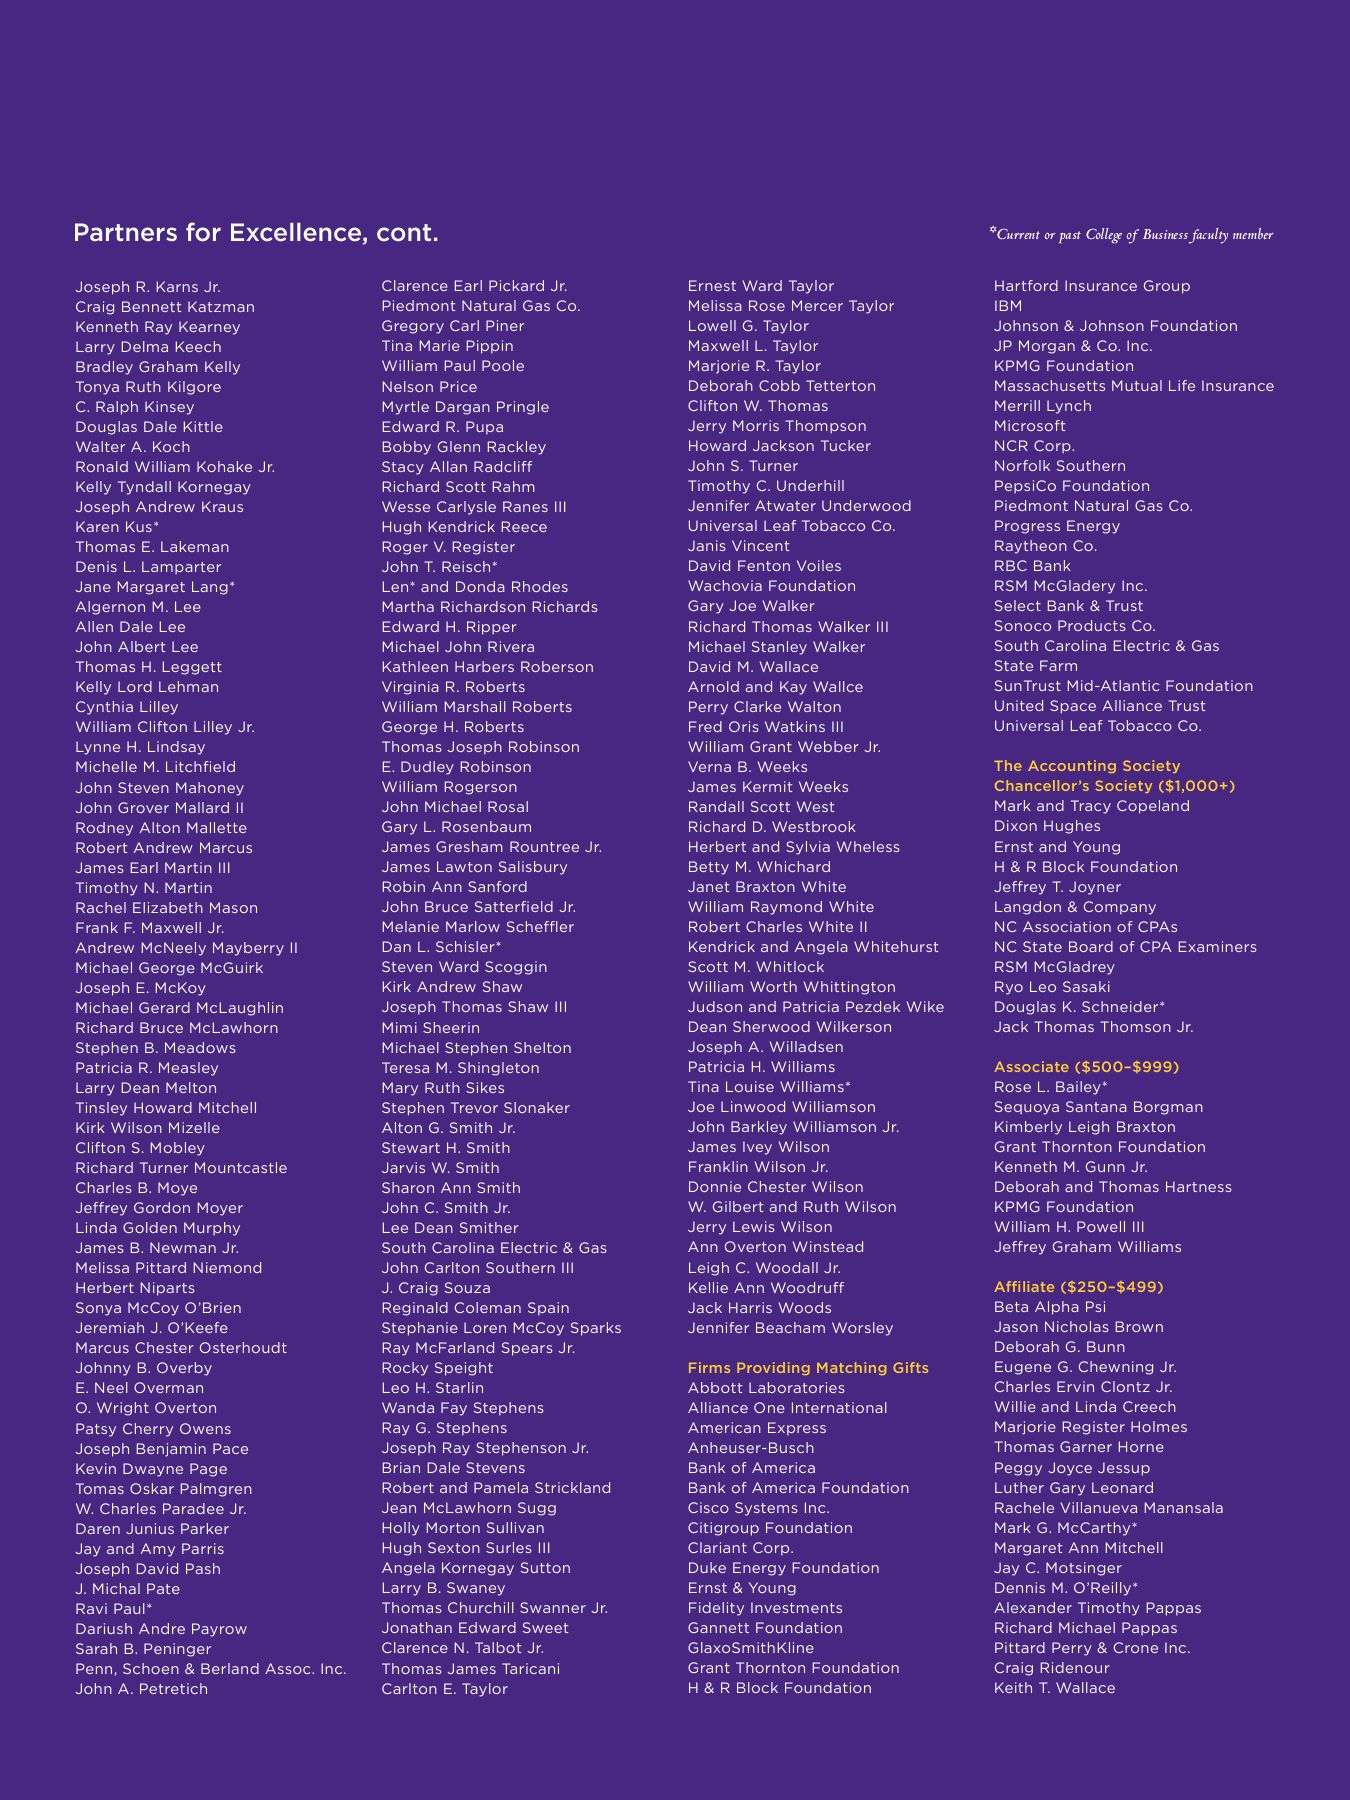 2009 College of Business Annual Report by East Carolina